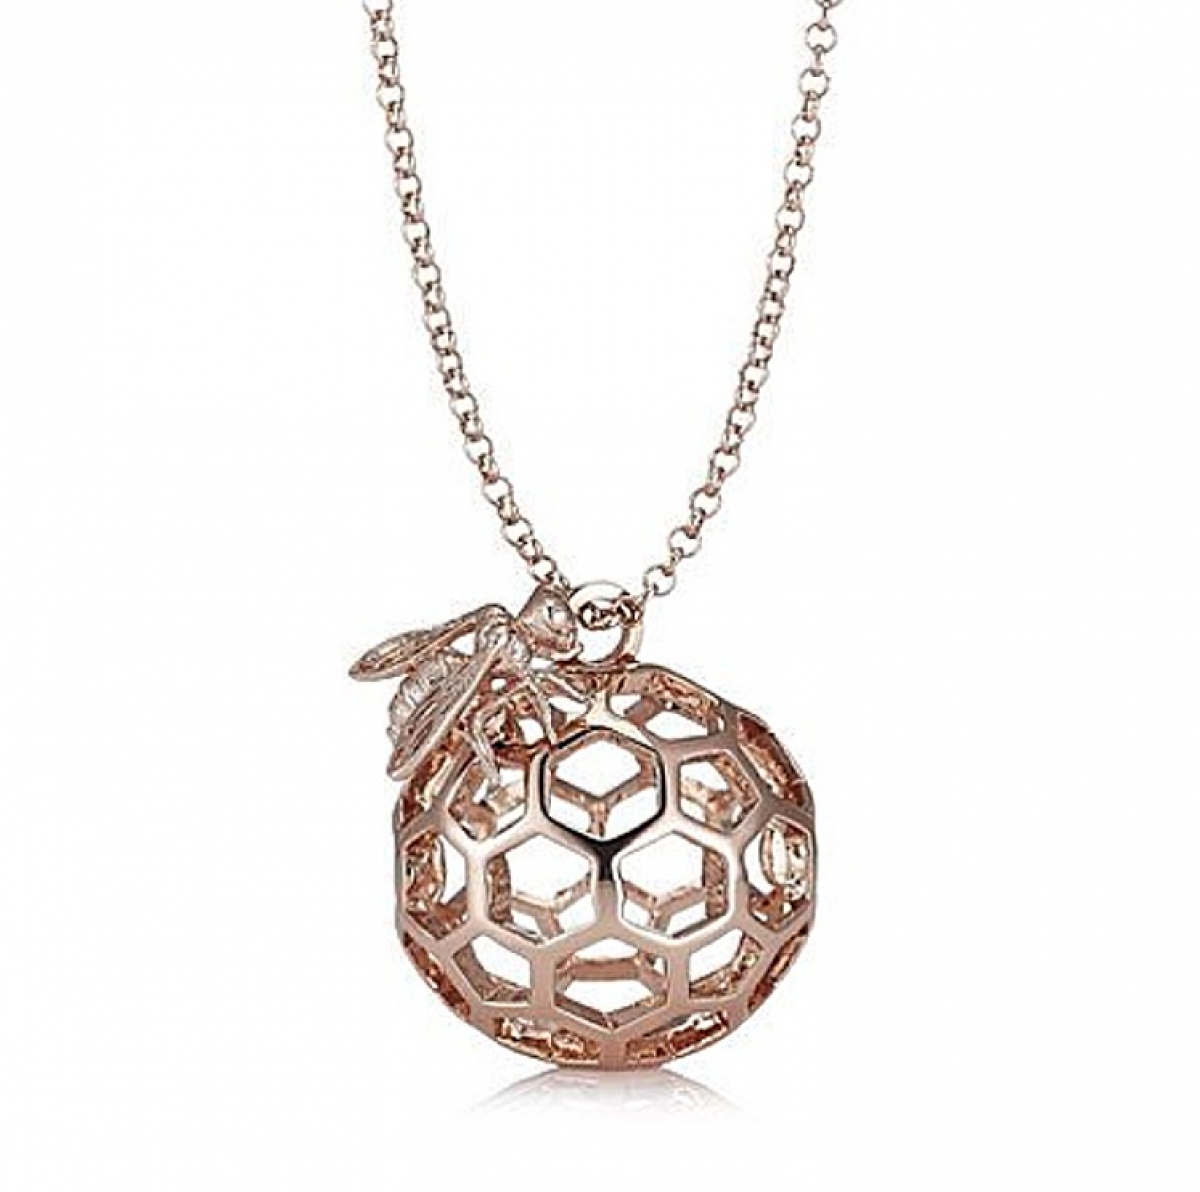 BEE & HONEYCOMB ORB ROSE GOLD